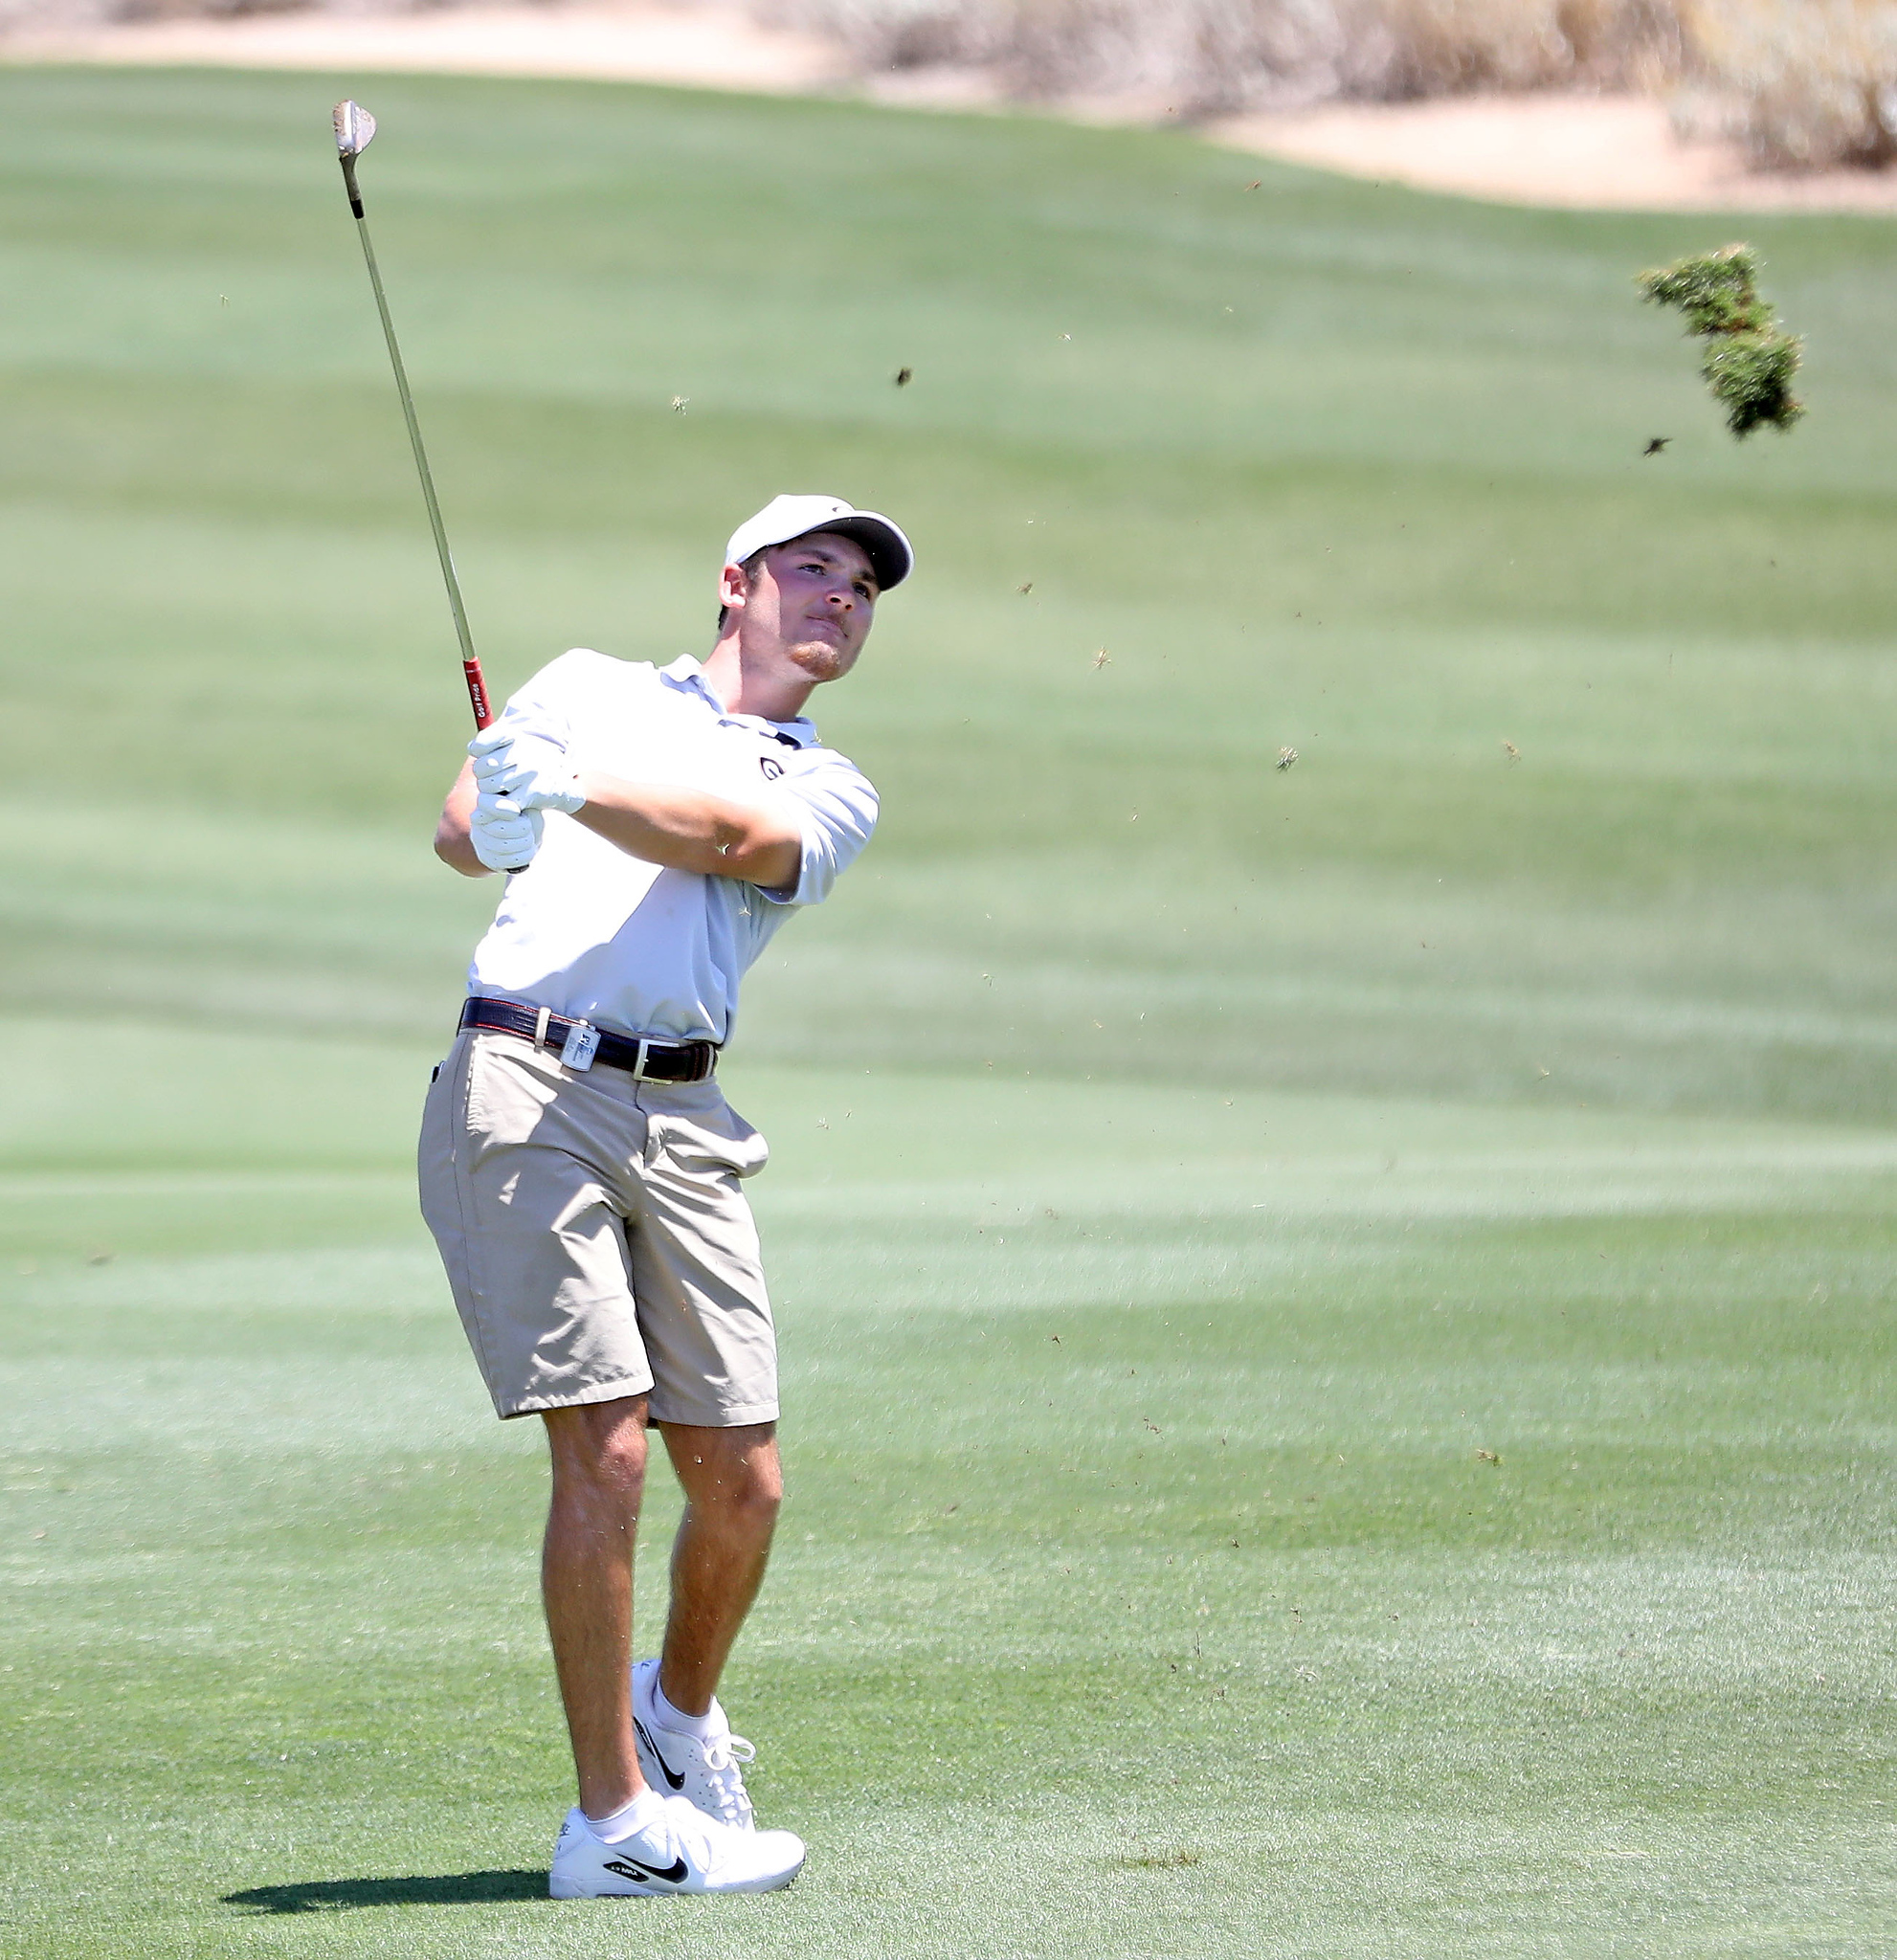 Georgia's Trent Phillips during the first round of the NCAA Championships at Grayhawk Golf Club in Scottsdale, Ariz., on Friday, May 28, 2021. (Photo by Steven Colquitt)